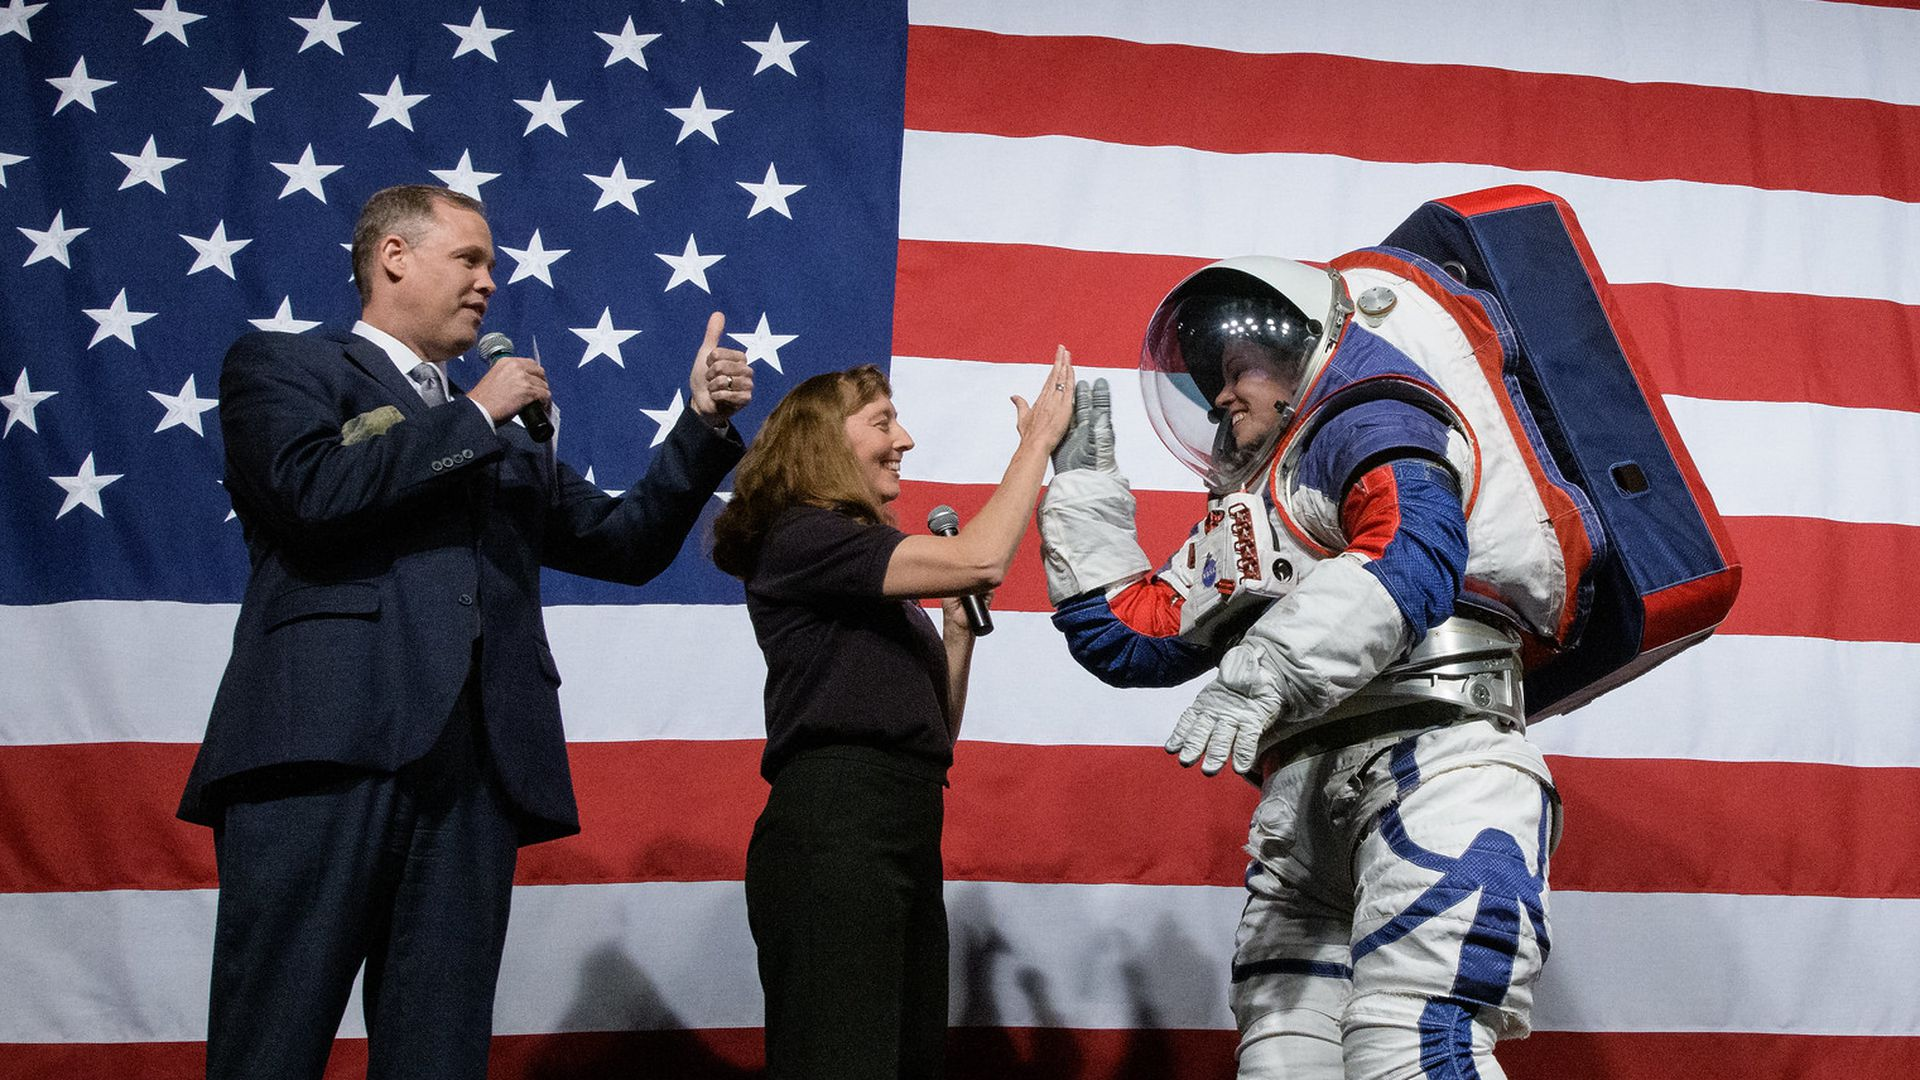 A person wears a spacesuit next to two other people in front of an American flag